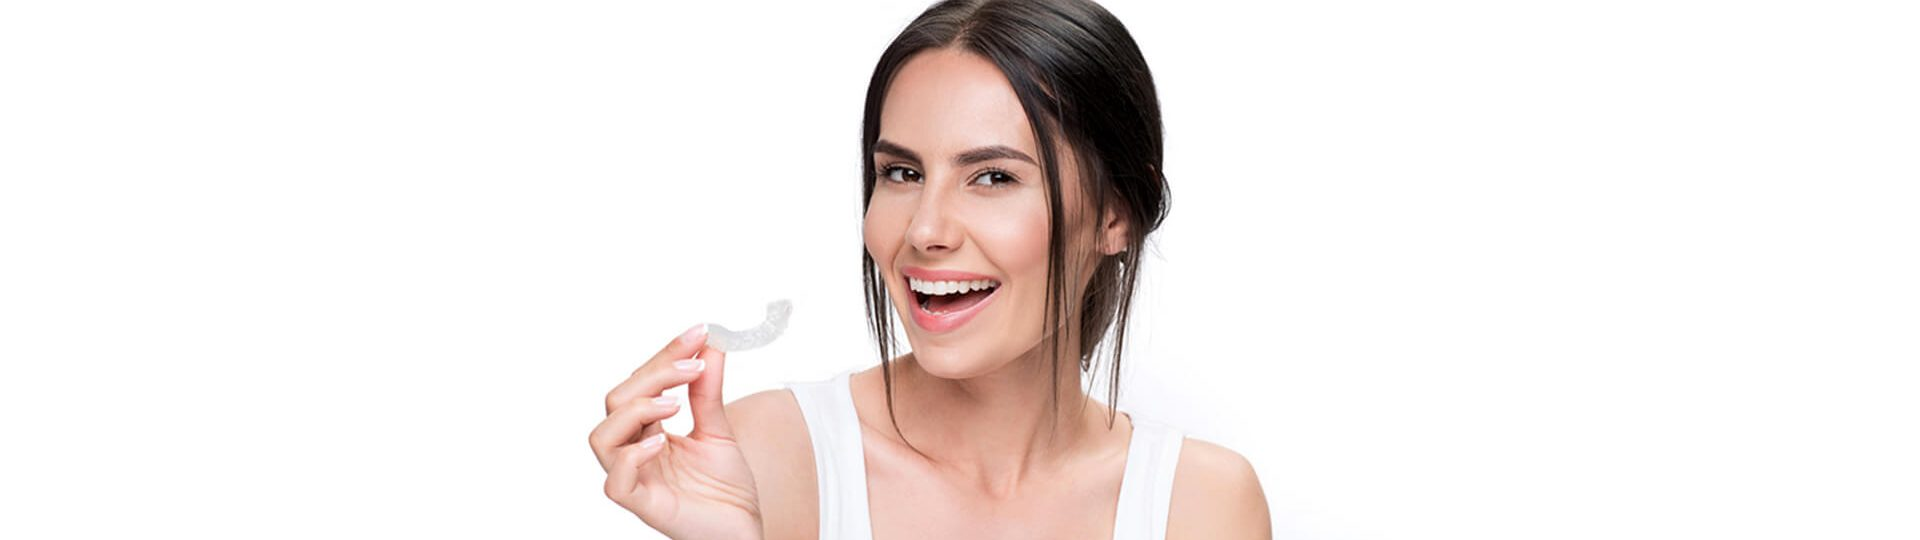 Making an Investment in Your Smile with Clear Aligners Is a Justifiable Expenditure